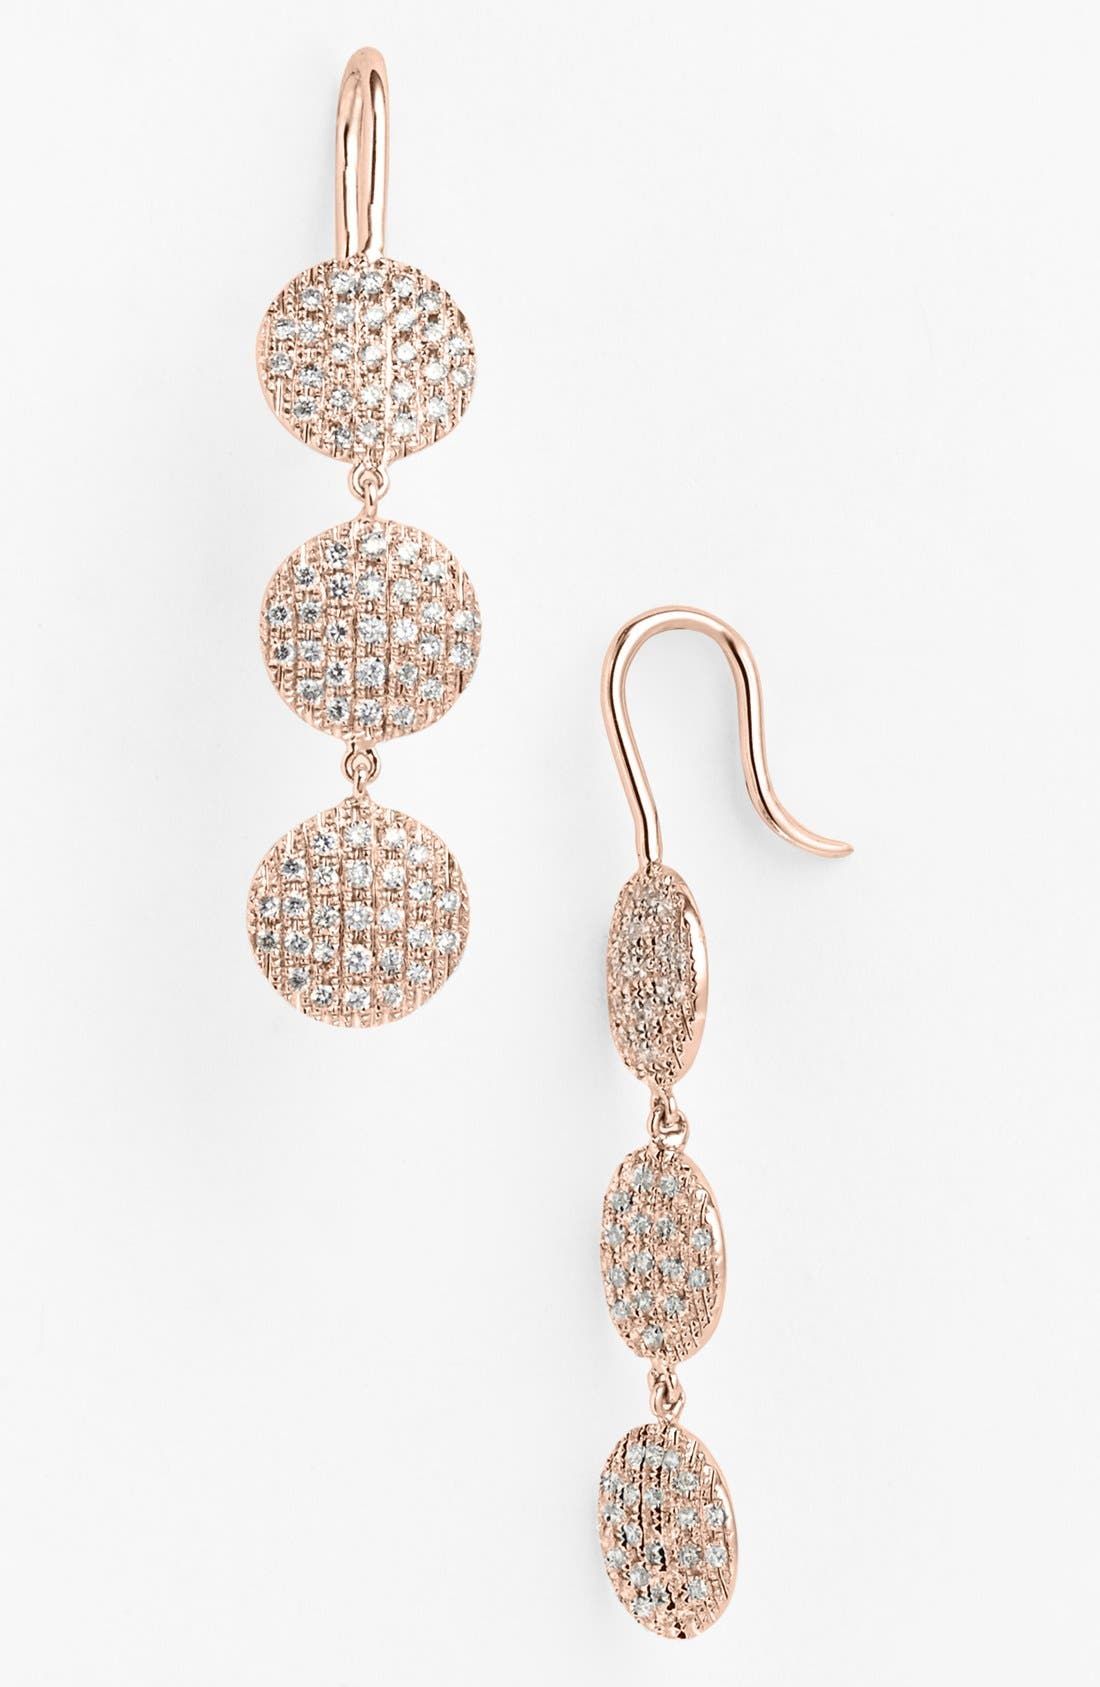 Main Image - Dana Rebecca Designs 'Lauren Joy' Diamond Drop Earrings